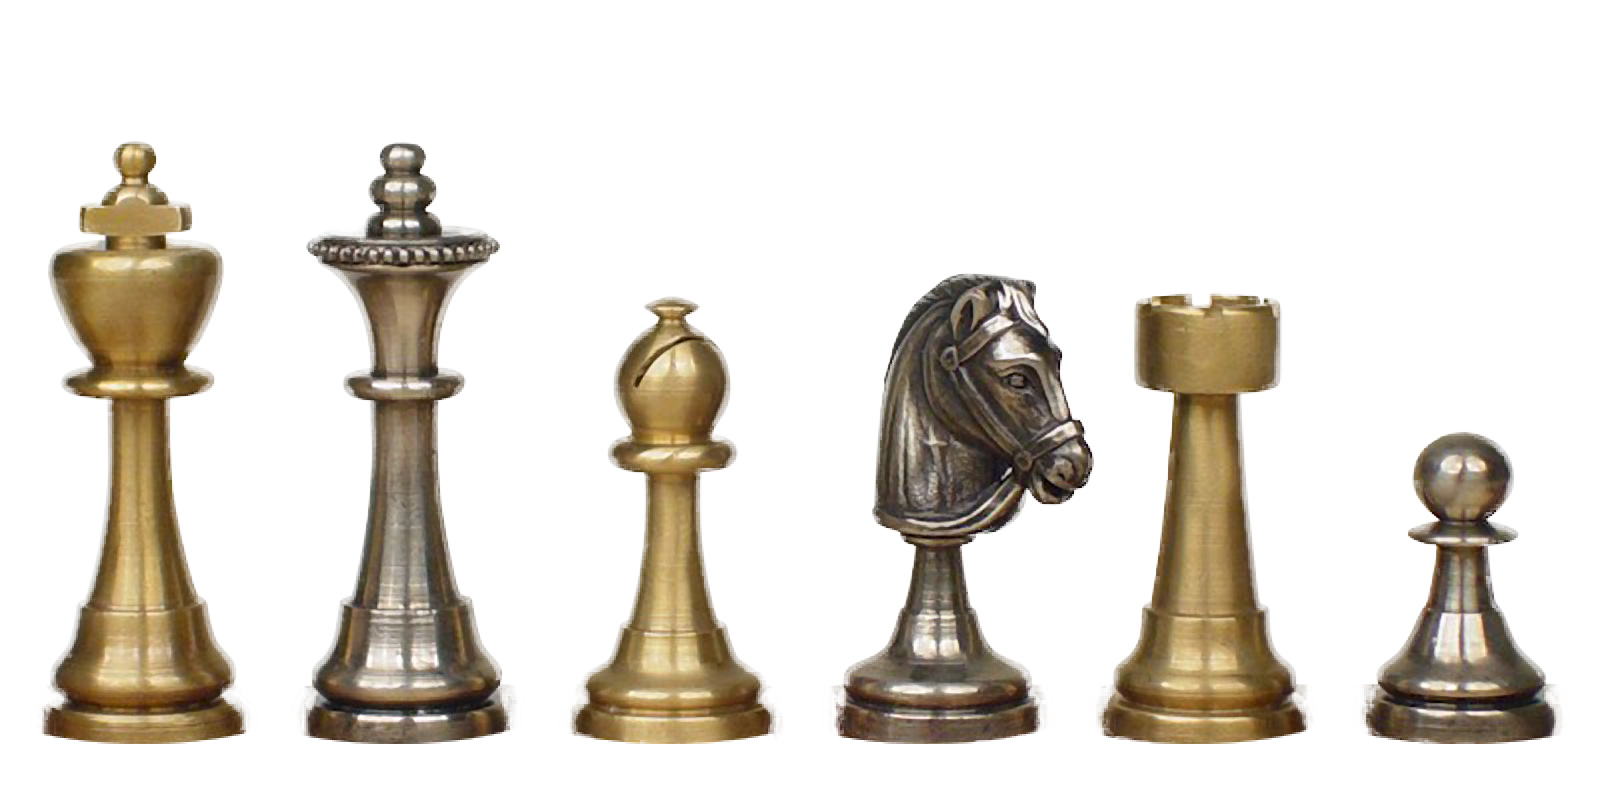 Cool Chess Pieces Chess Free Images At Clker Com Vector Clip Art Online